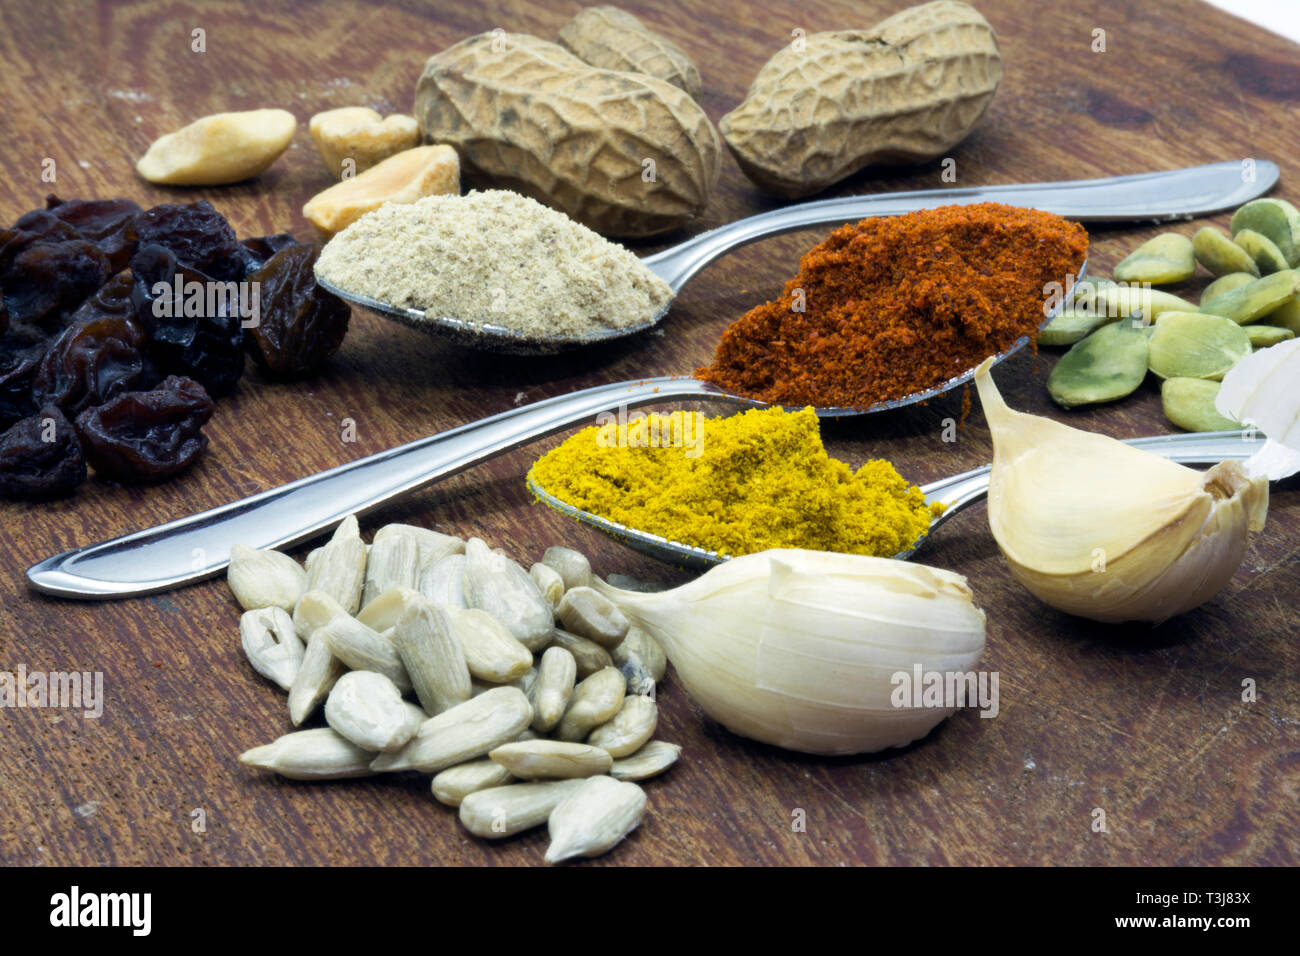 seasonings on some spoons, pepper, paprika and turmeric, garlic and pumpkin seeds and sunflower on a wooden board with autumn colors Stock Photo